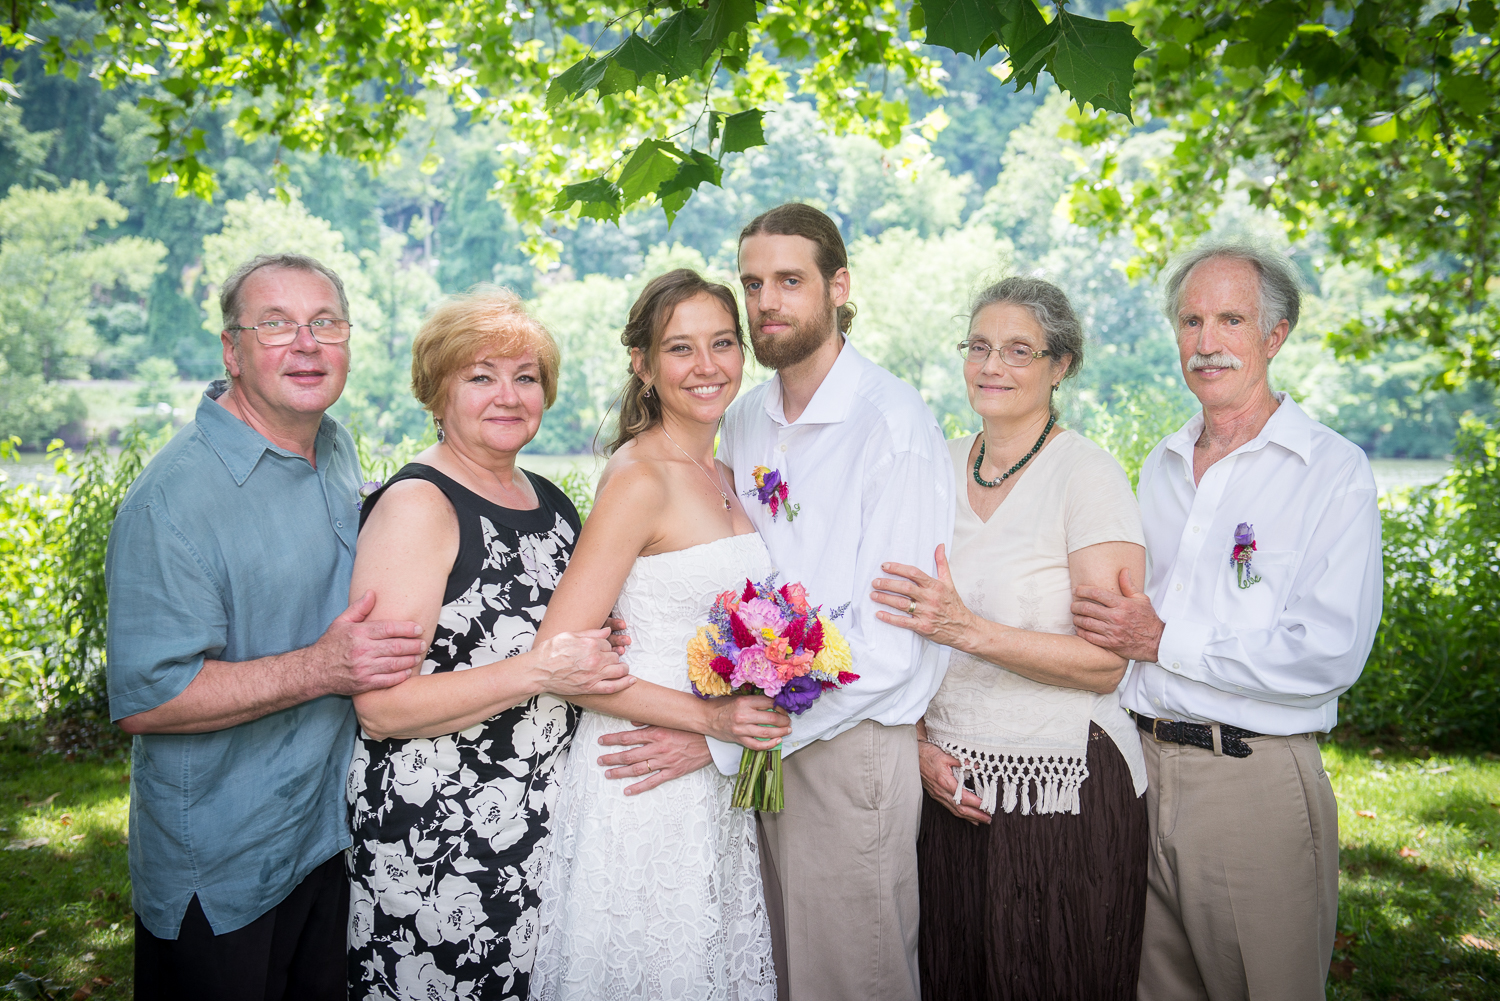 Two families joined in matrimony: the bride and groom with their parents.